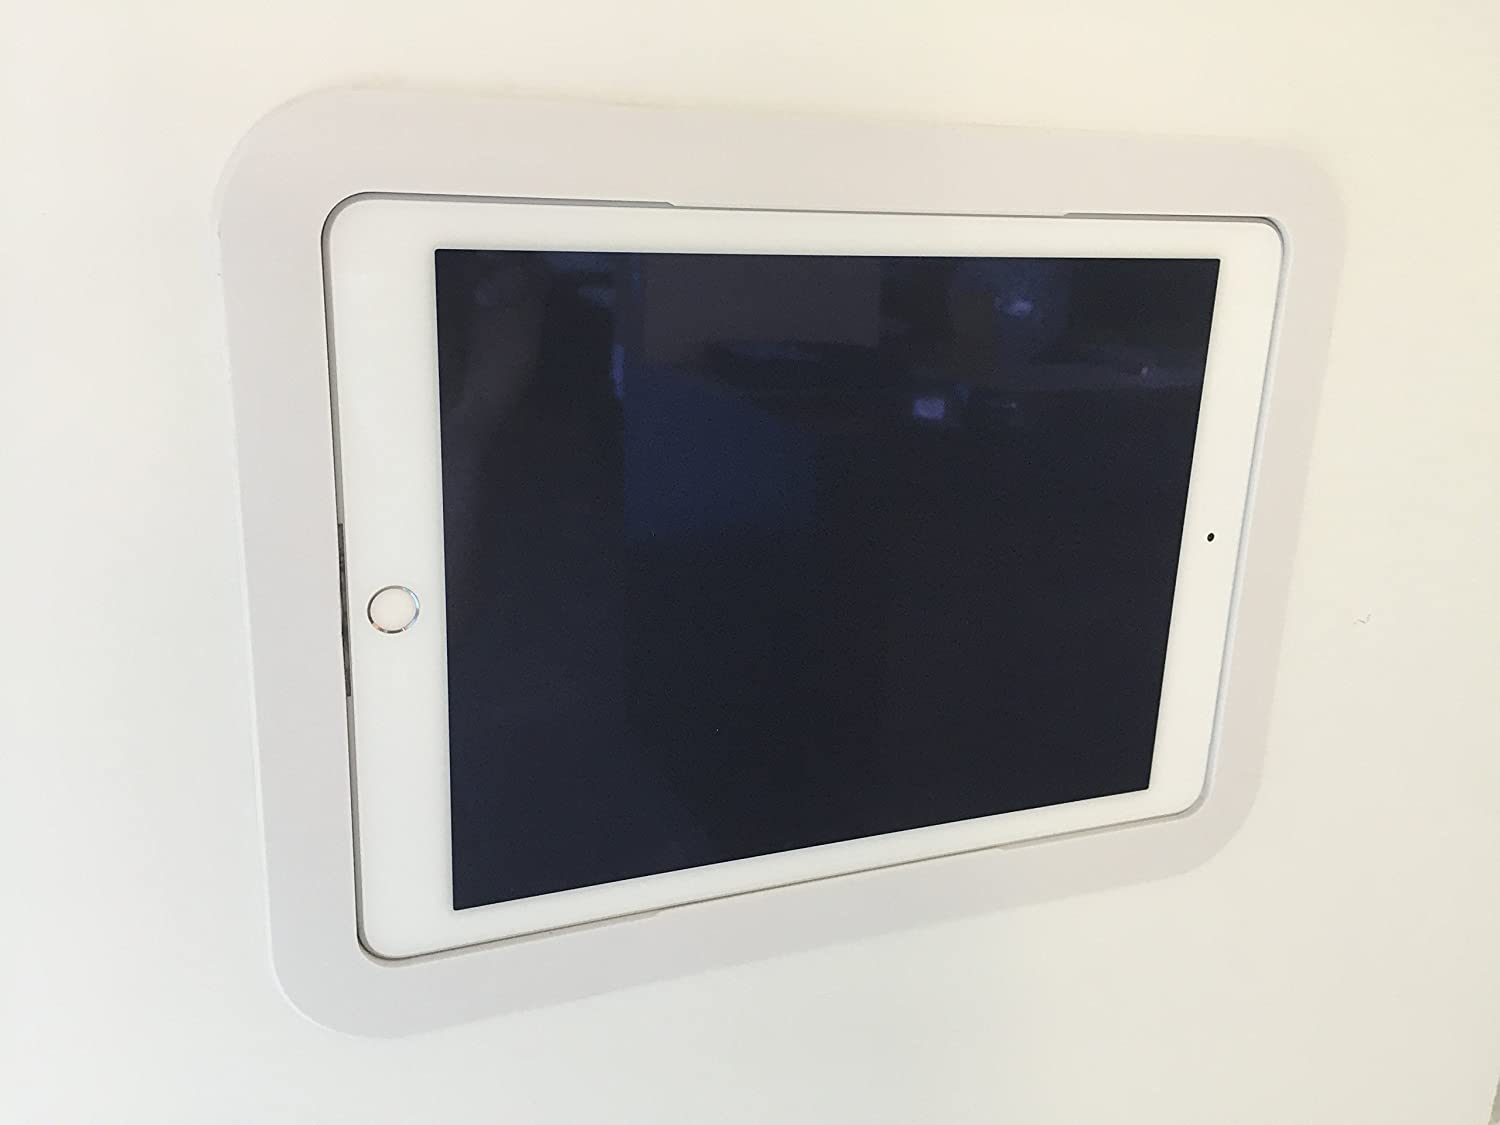 In-Wall iPad Mount for iPad Air1, Air2, PRO9.7, 5th, and 6th Generation Home Media Systems Inc. HMSIPADAIR